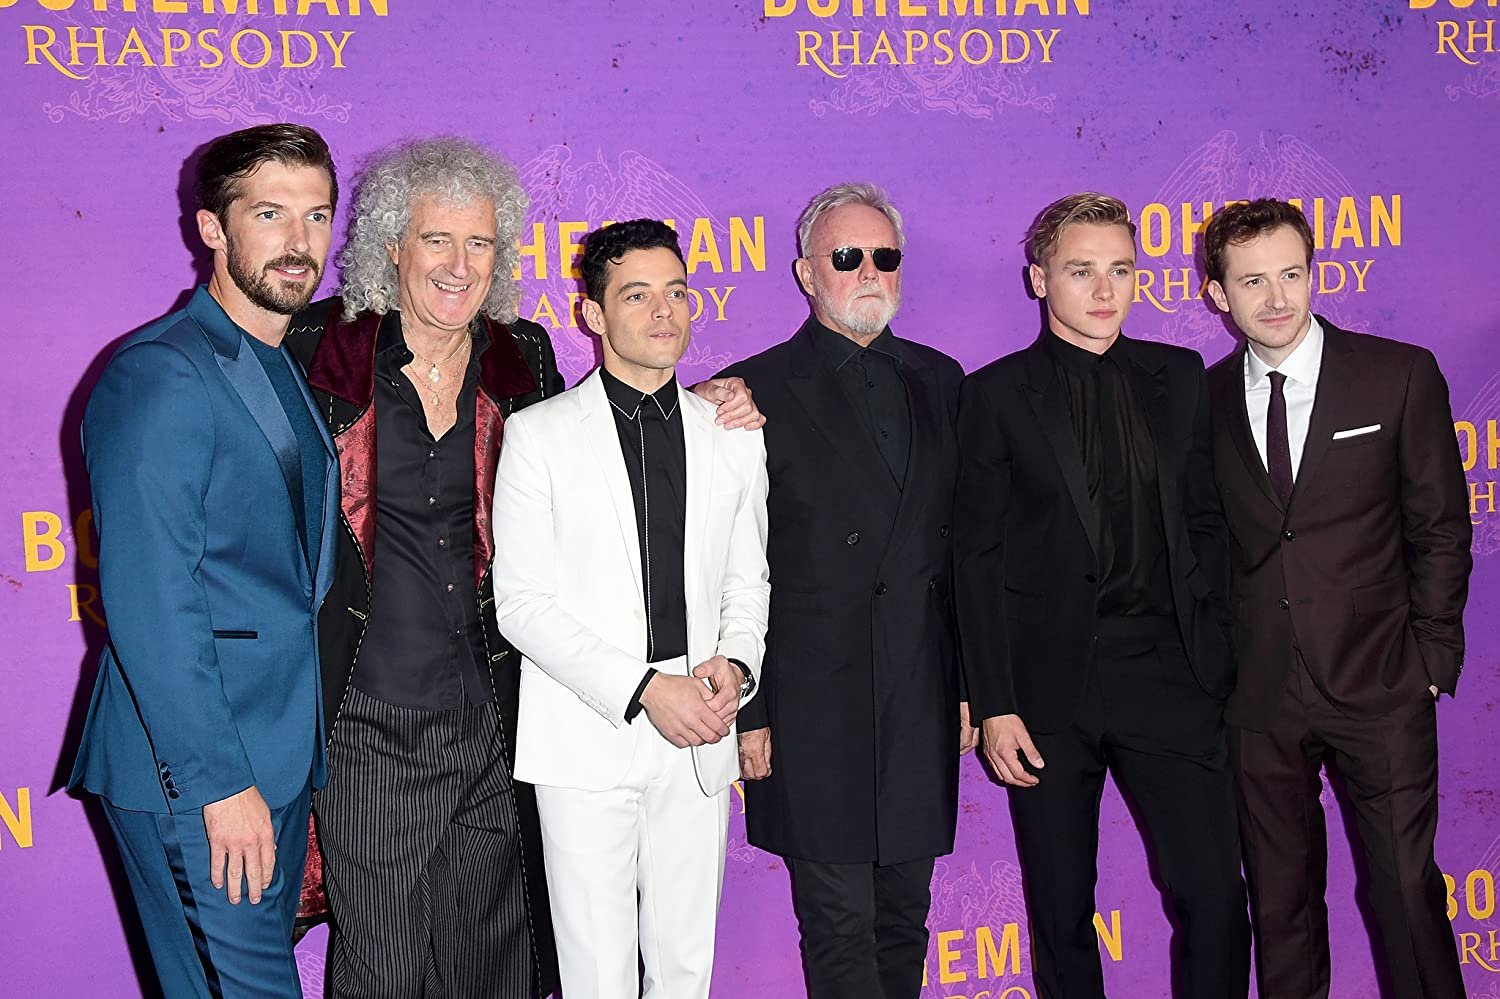 Joseph Mazzello, Roger Taylor, Brian May, Rami Malek, Gwilym Lee, and Ben Hardy at an event for Bohemian Rhapsody (2018)